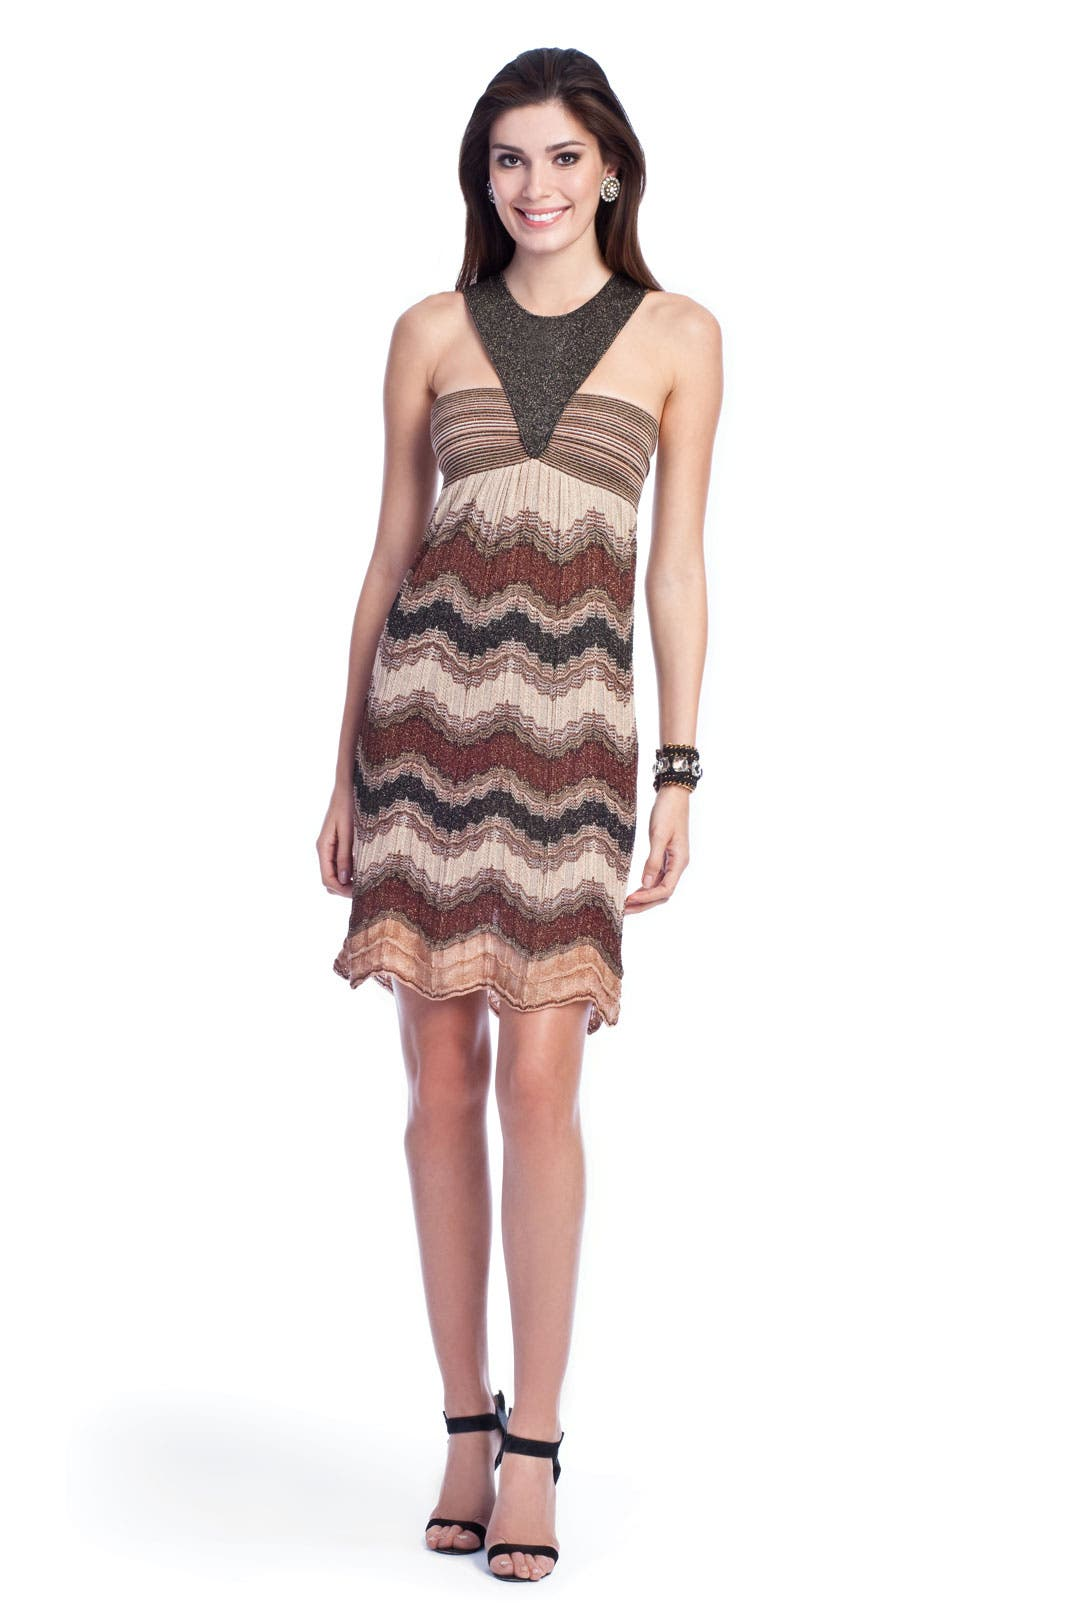 M Missoni Emily the Empress Dress